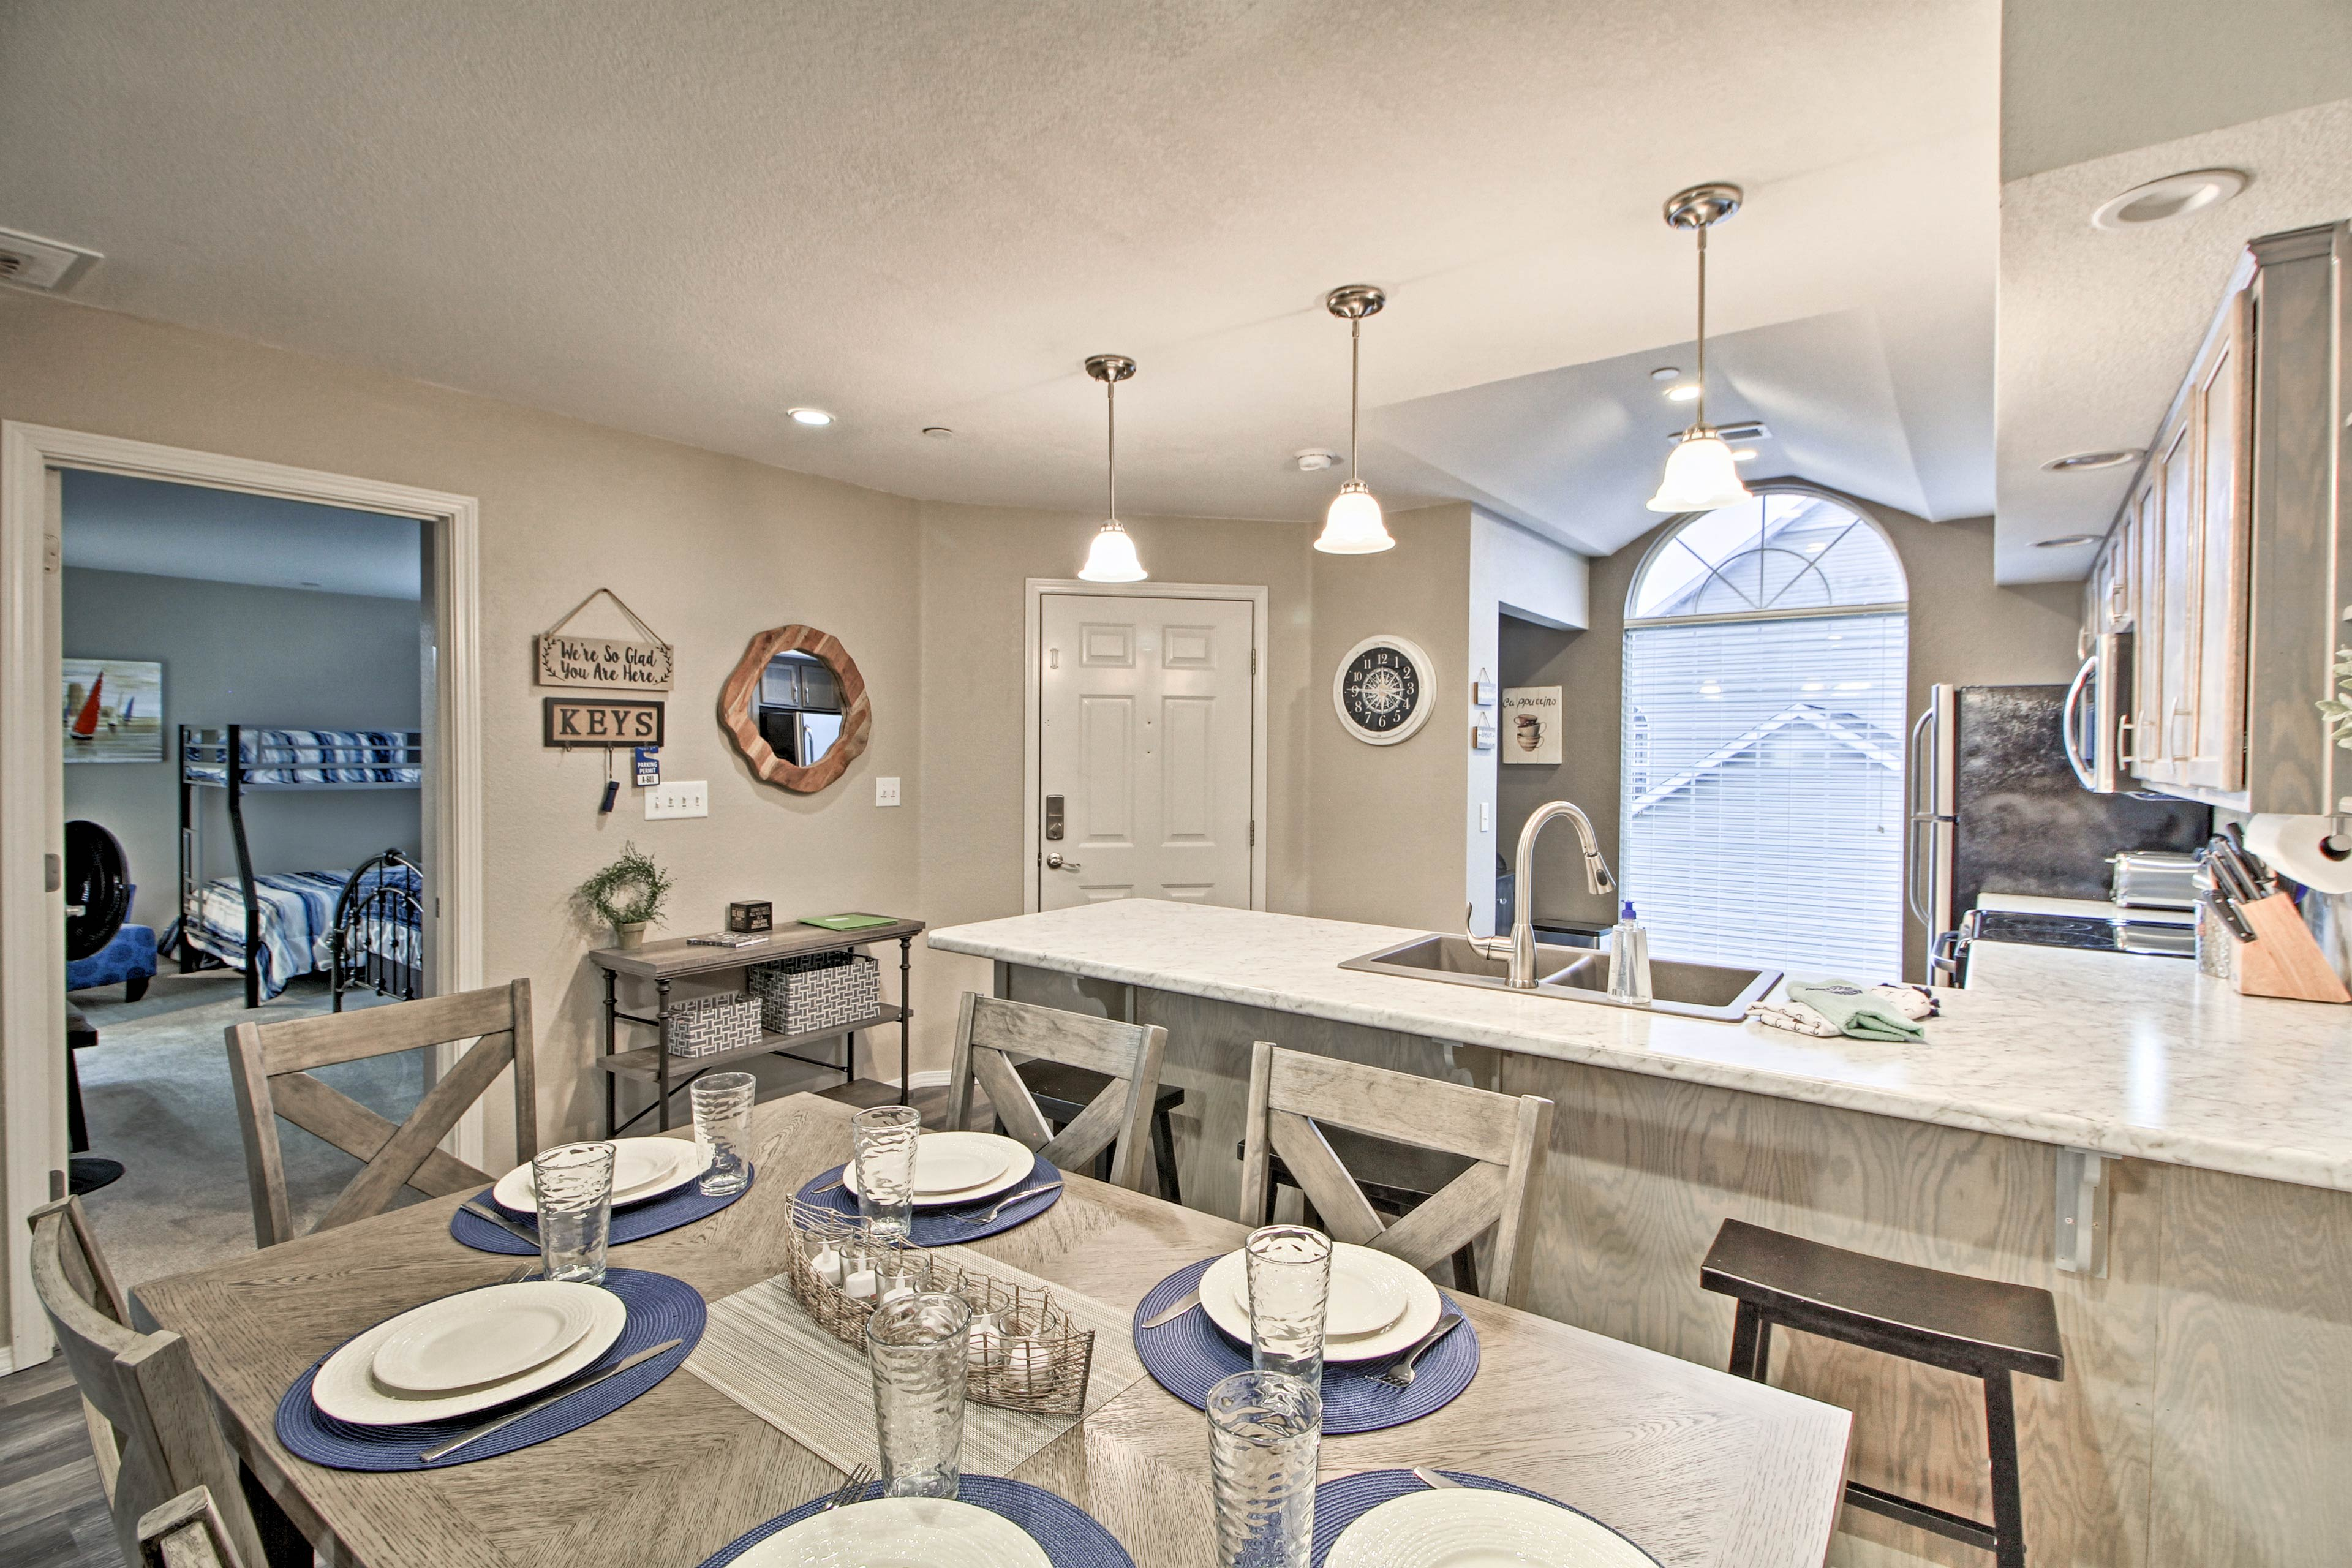 Gather around the 6-person dining table for home-cooked meals.